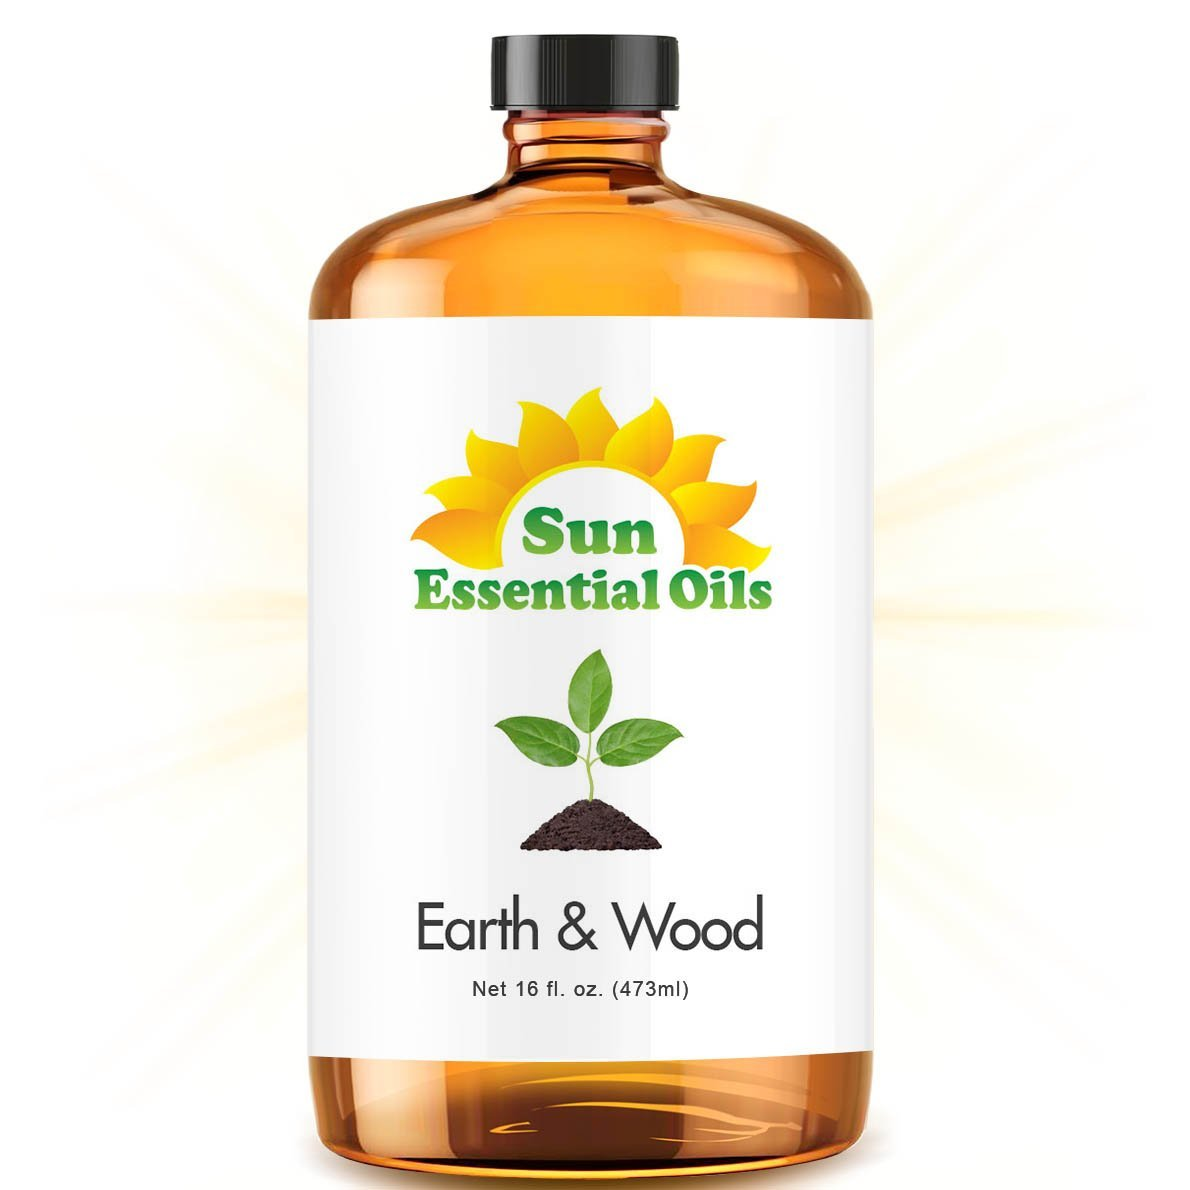 Earth & Wood Blend - Mega 16oz Best Essential Oil (Compare to Edens Garden Earth & Wood) Earth & Wood Blend (Compare to Edens Garden Earth & Wood) - (Large 4 ounce) Best Essential Oil (Cardamom, Cedarleaf, Cedarwood, Fir Needle, Patchouli and Sandalwood)